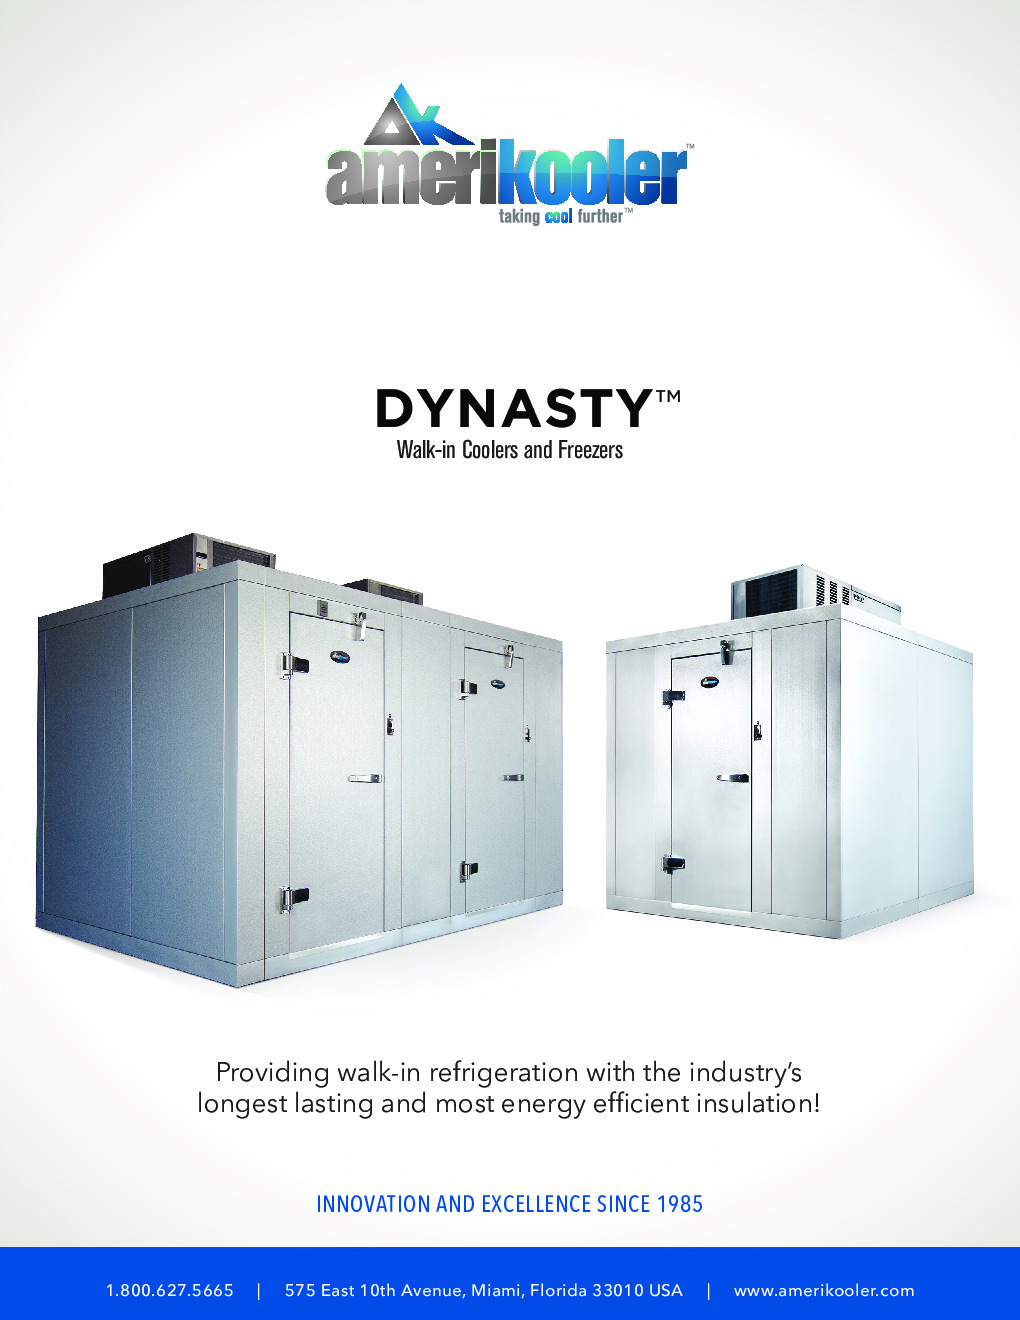 AmeriKooler DW071077N-5/5-RM 7' X 10' Walk-In Cooler, 5' L Cooler without Floor and 5' L Freezer, Remote